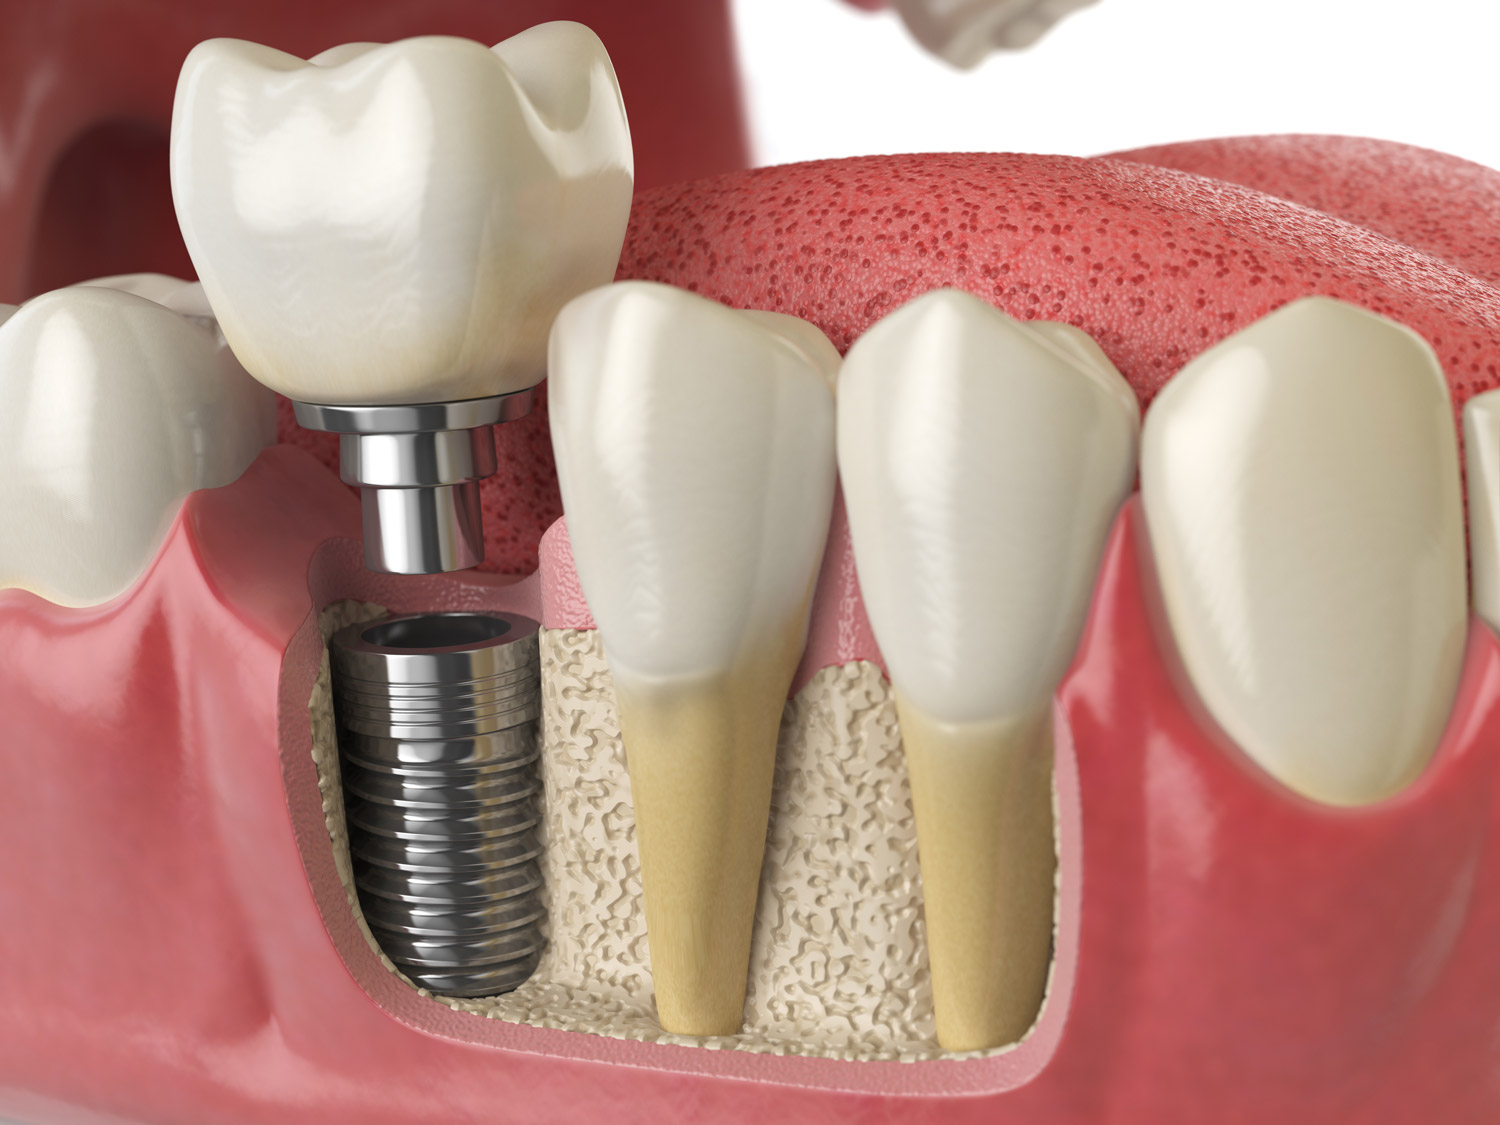 Centre dentaire Drummond - Greffe gingivales image